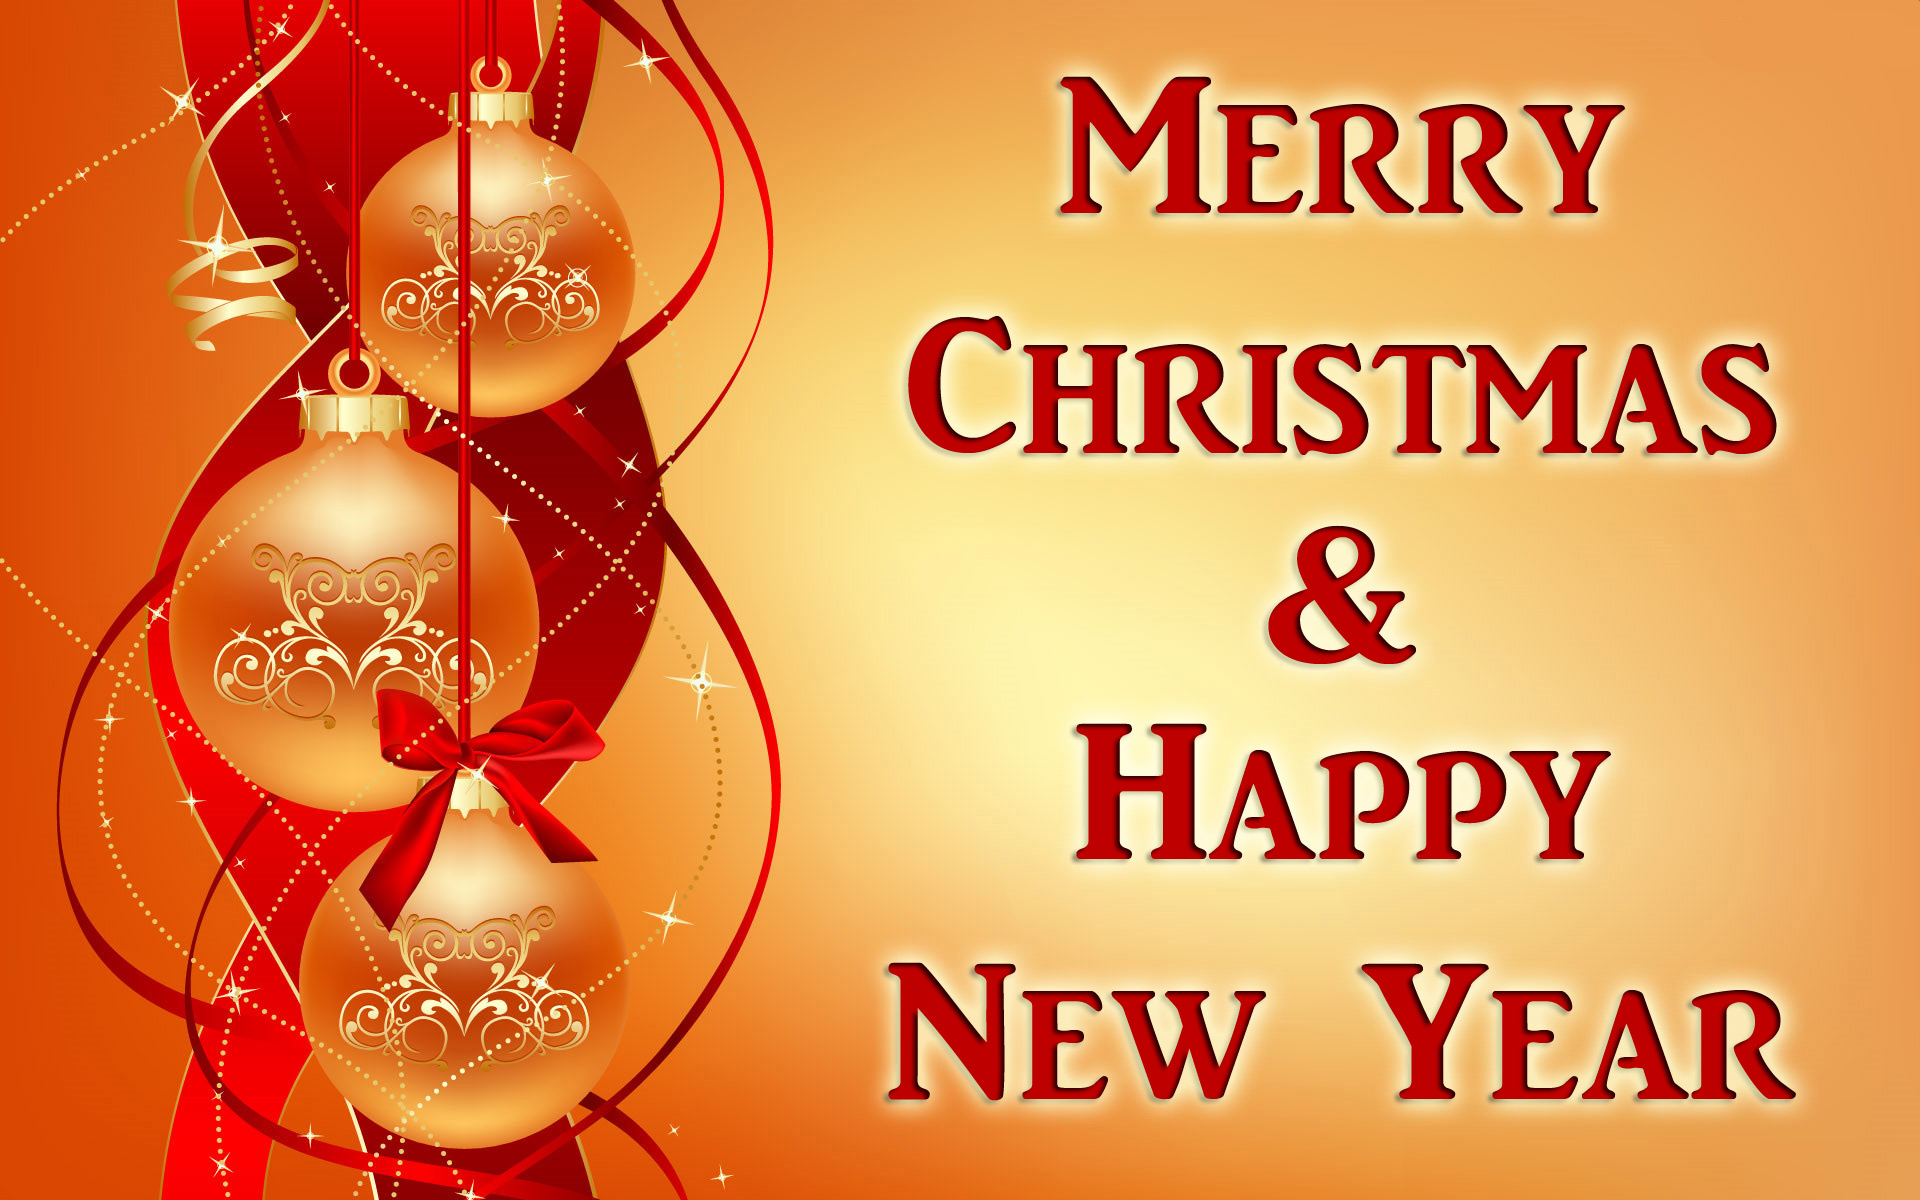 Christmas n new year greetings card happy new year 2015 beautiful christmas n new year greetings card wallpaper m4hsunfo